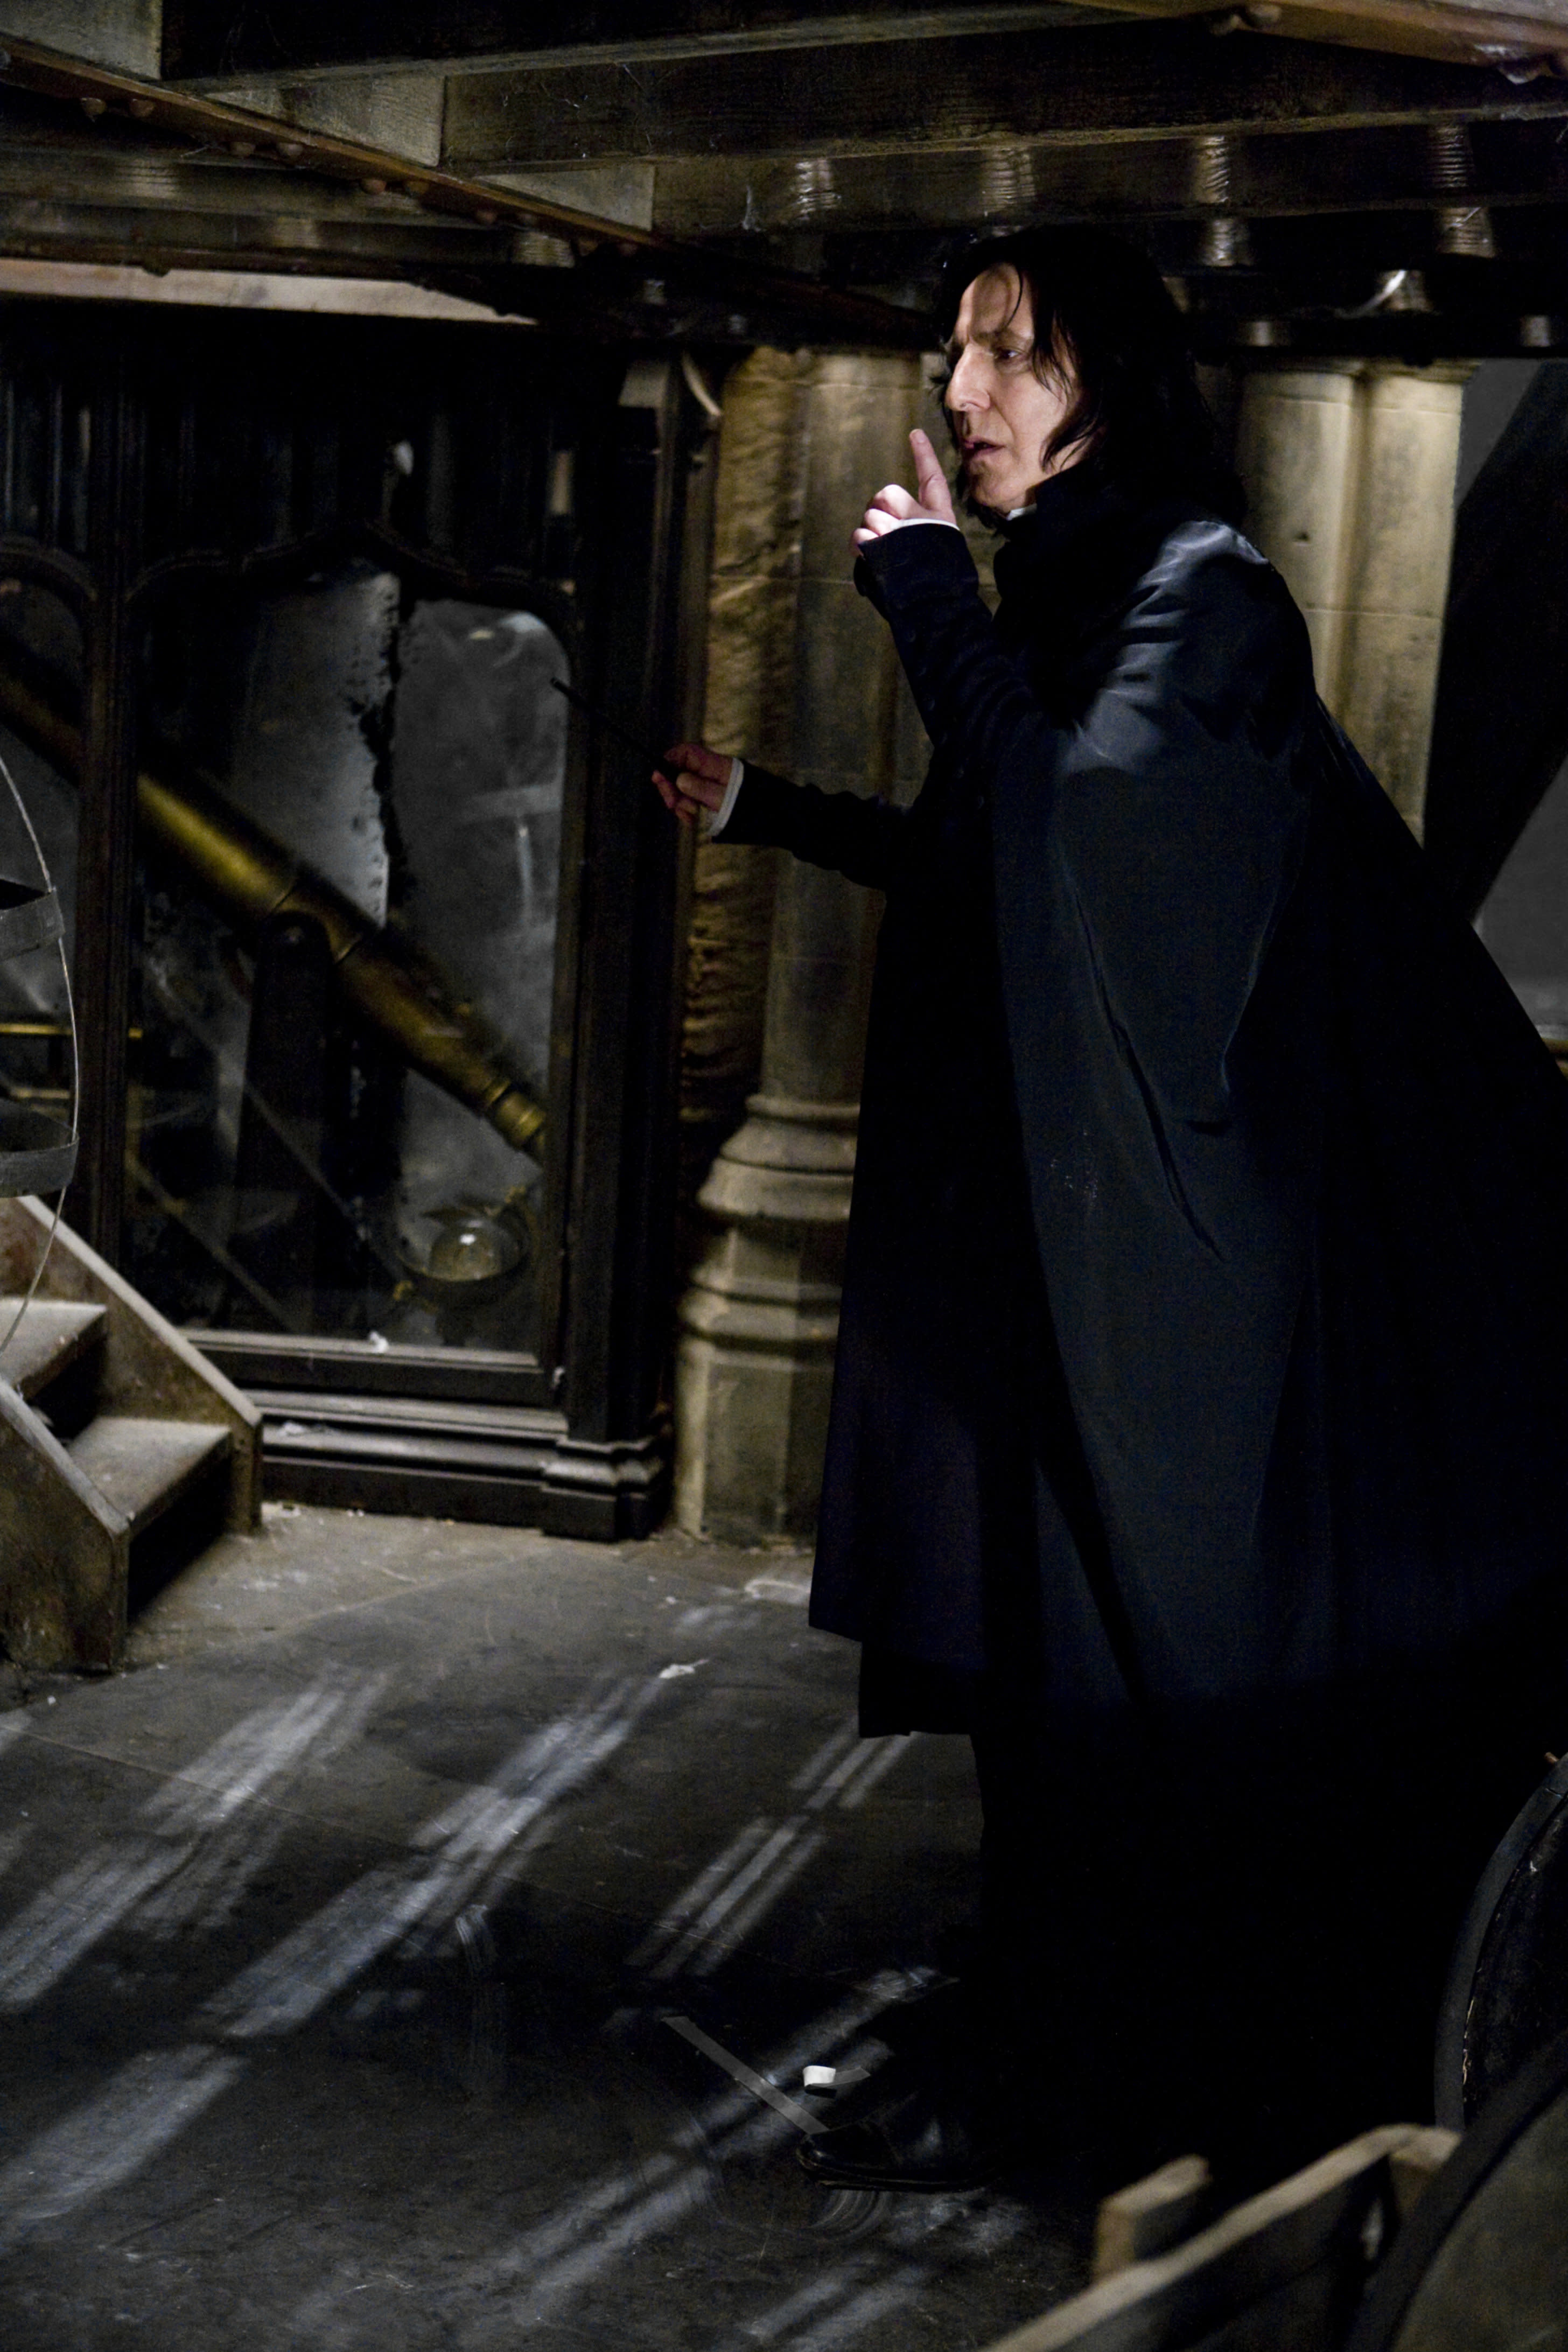 SeverusSnape WB F6 SnapeHoldingFingerToMouth Still 080615 Port